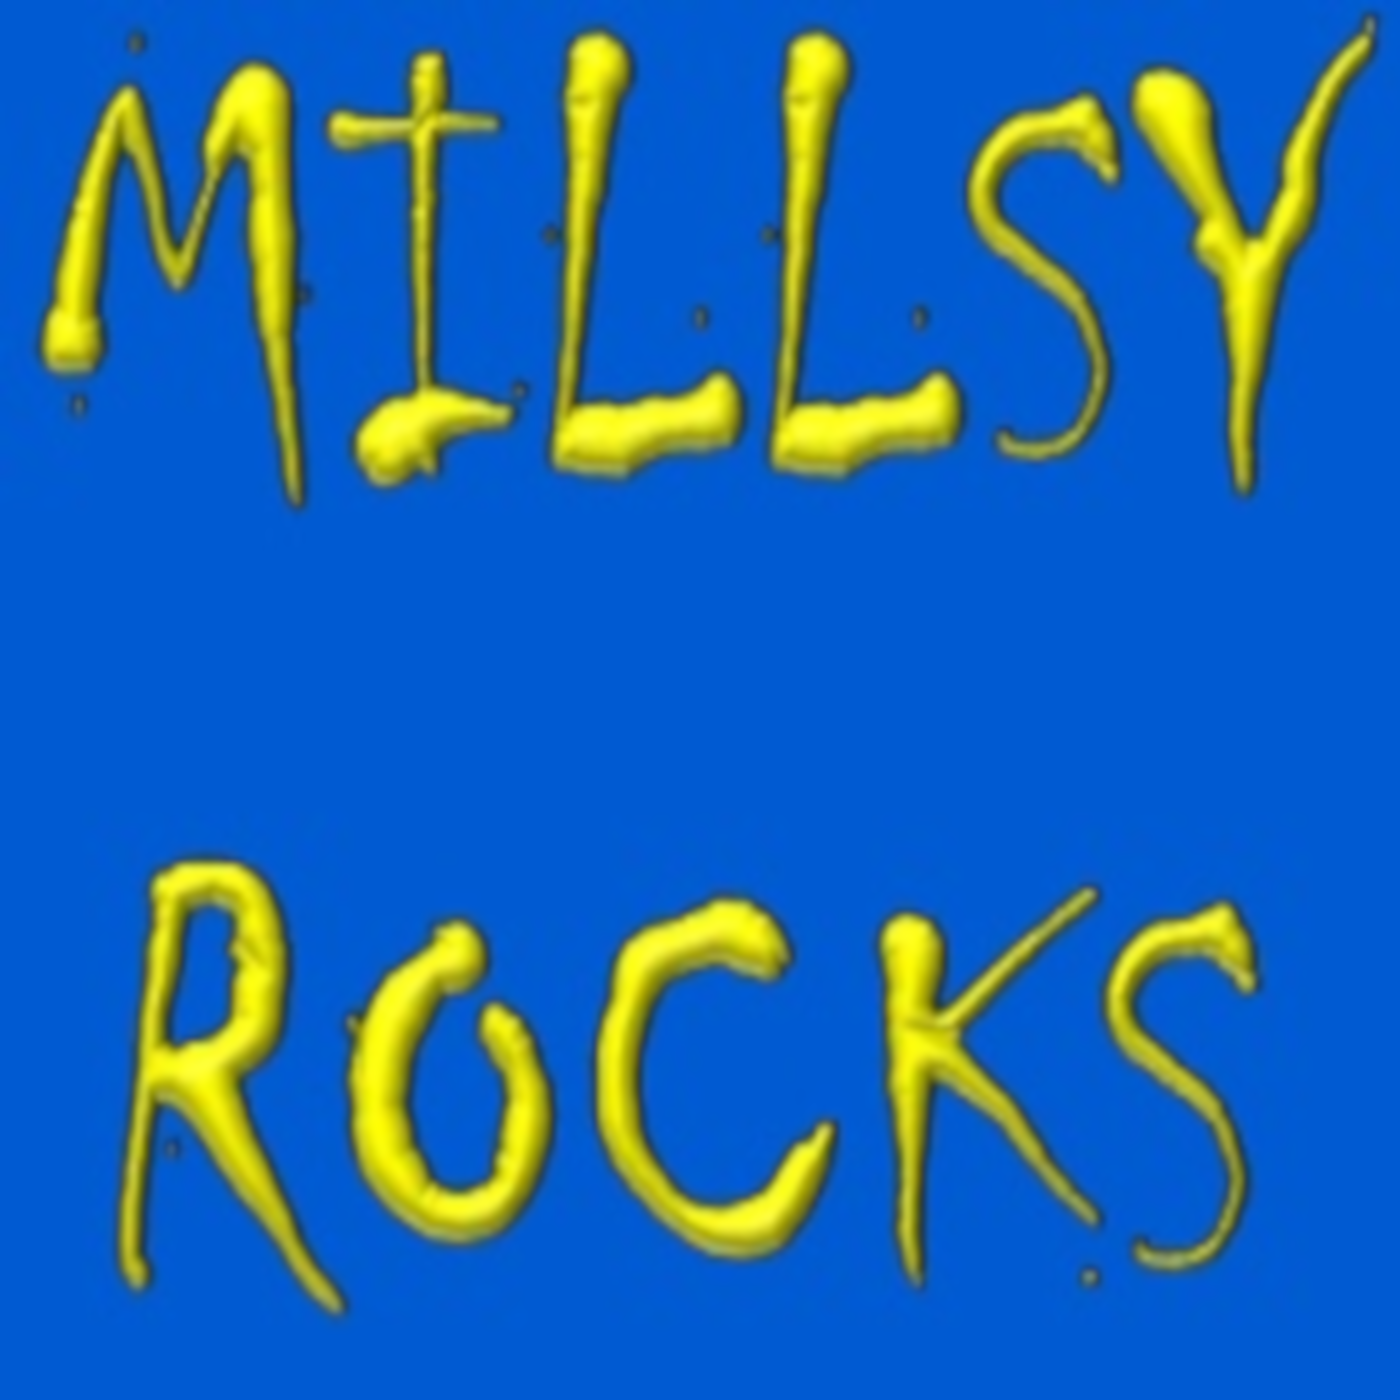 Millsy Rocks - Carl Mills Rock Metal Show-15-02-2019